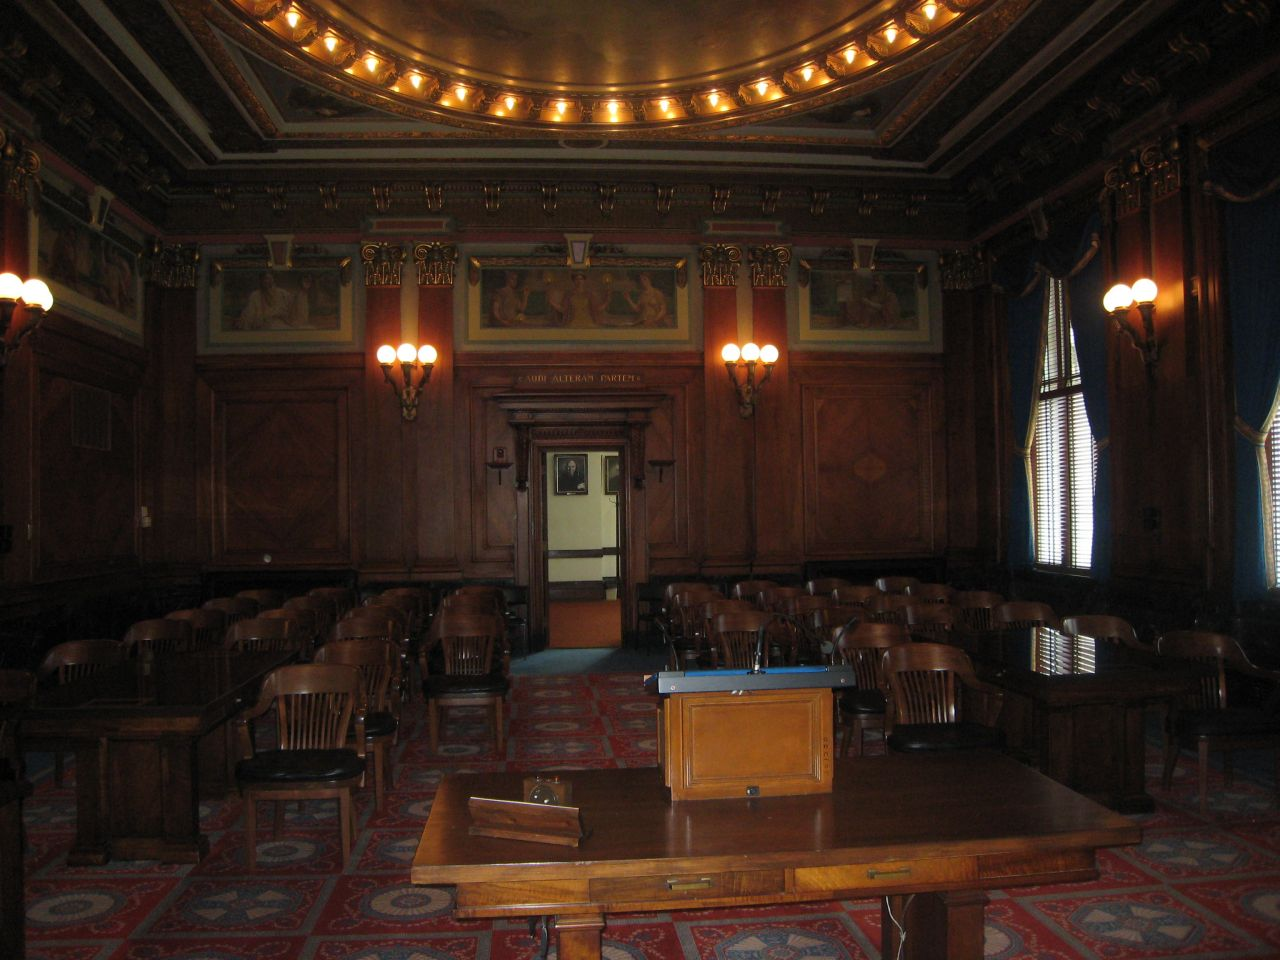 Gallery of the Illinois Supreme Court courtroom